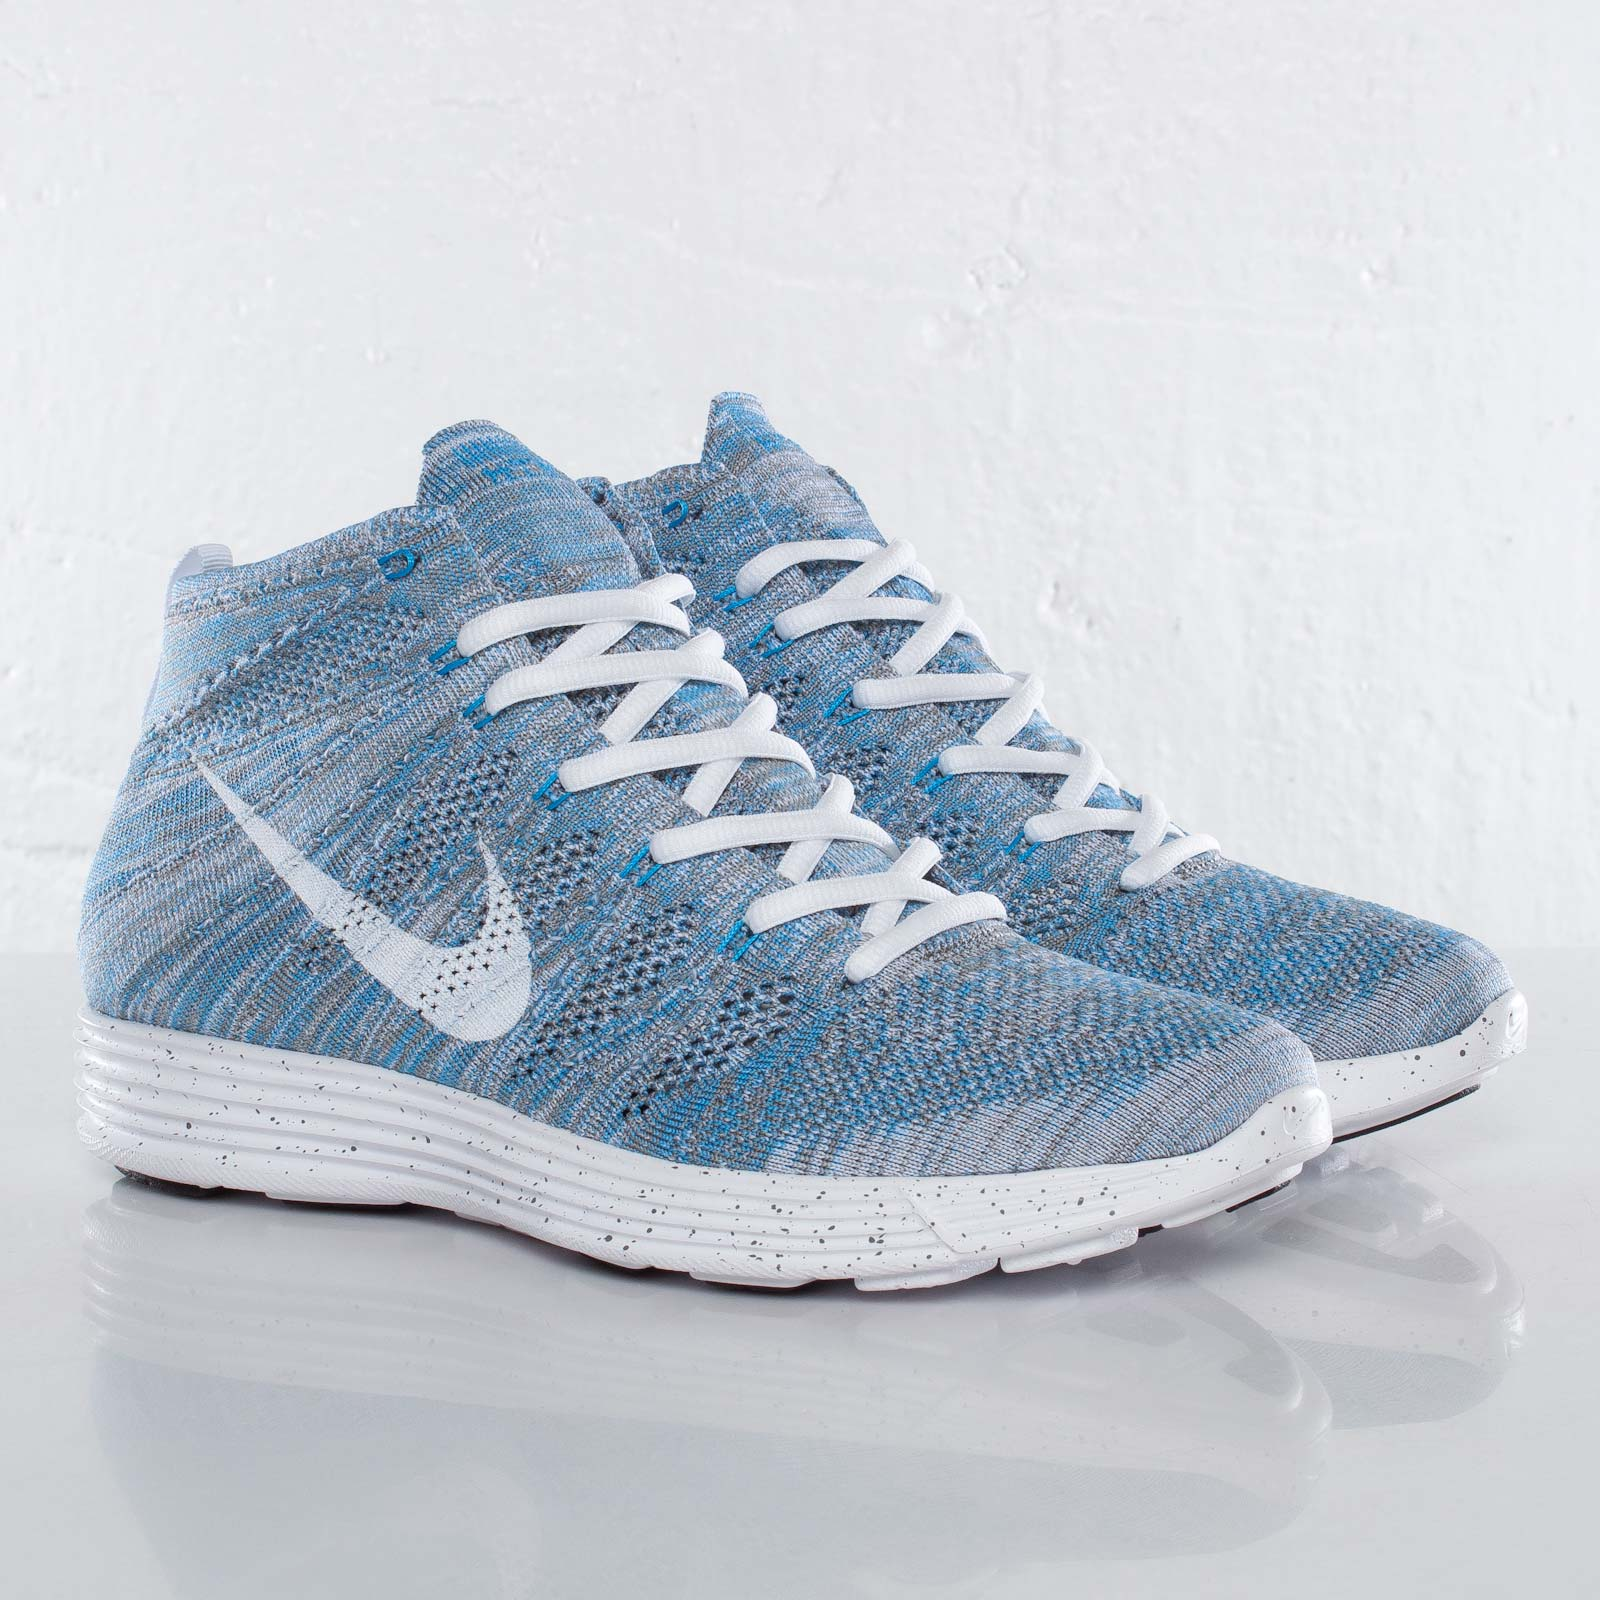 huge selection of c2355 aa29d Nike Lunar Flyknit Chukka HTM SP